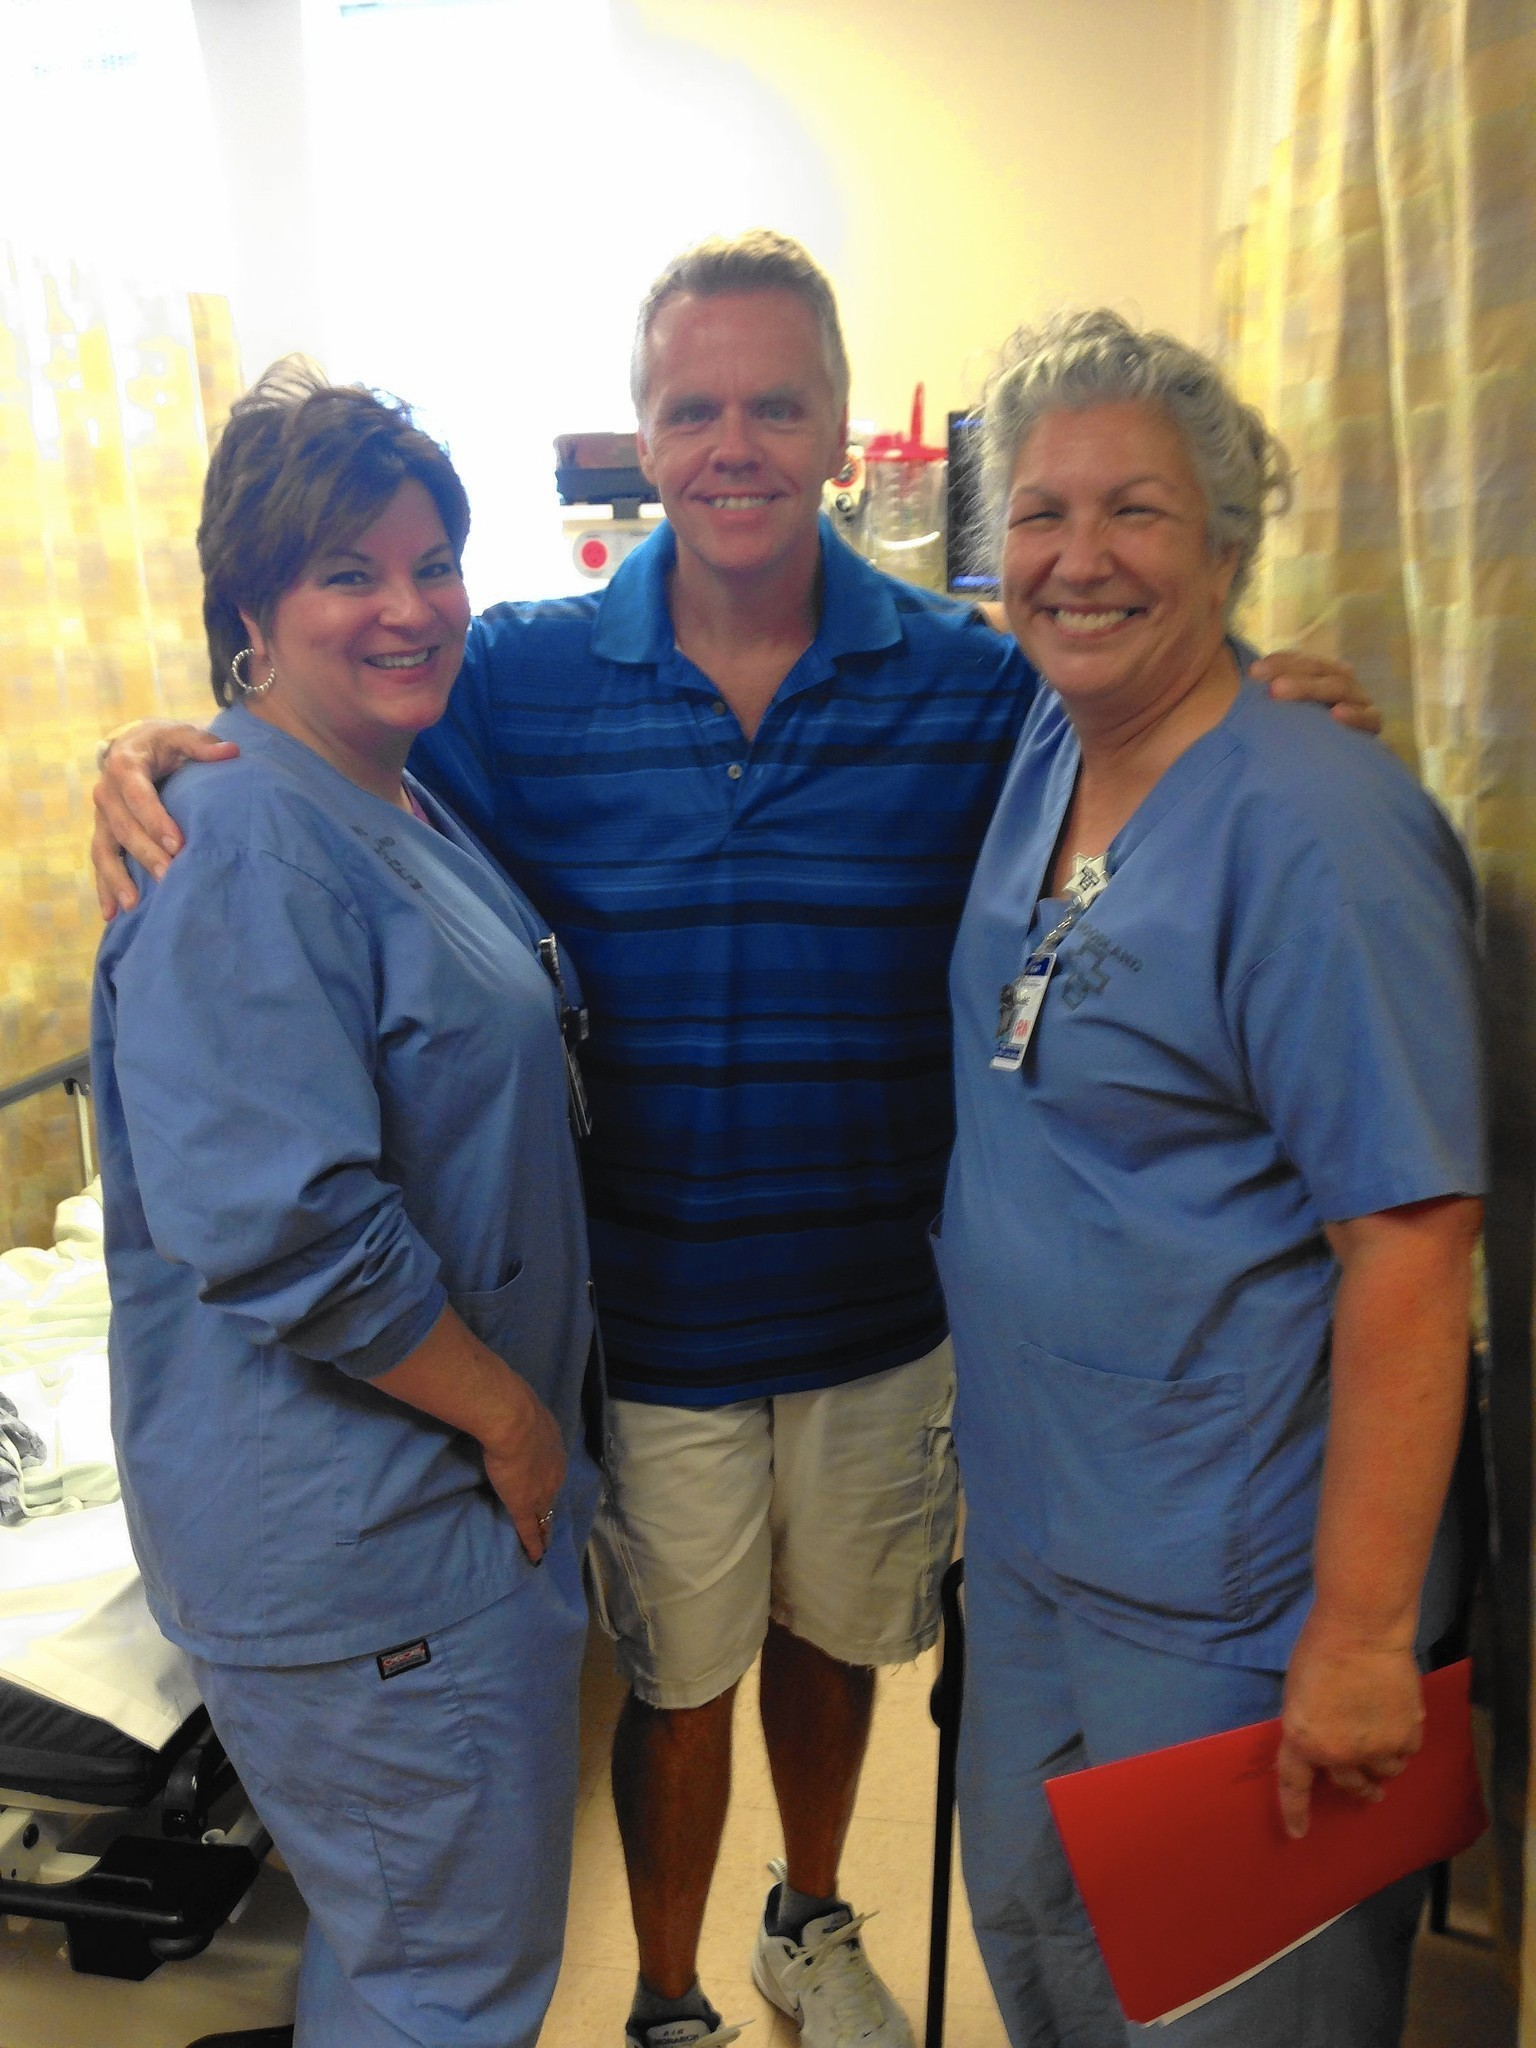 Colonoscopy Room: Routine Colonoscopy Is Anything But For Most Of Us